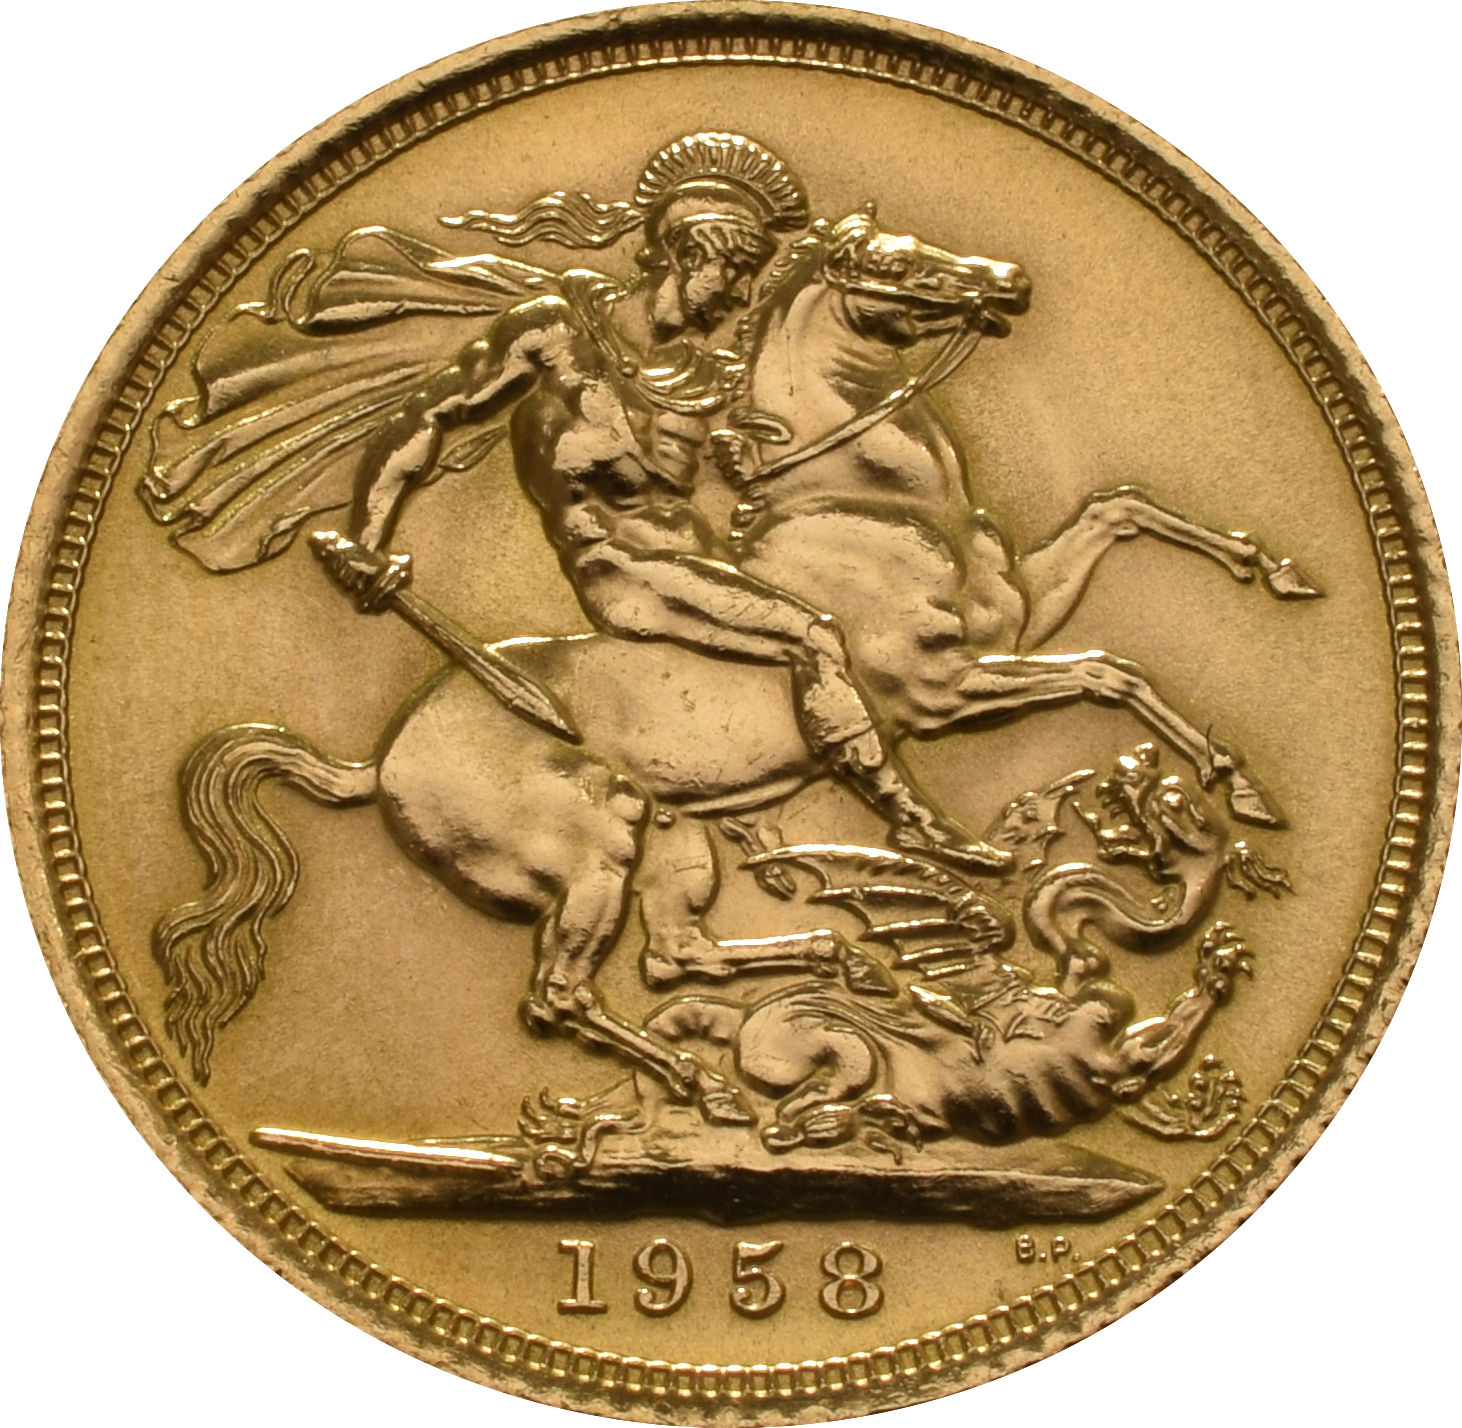 1958 Gold Sovereign Elizabeth Ii Young Head 310